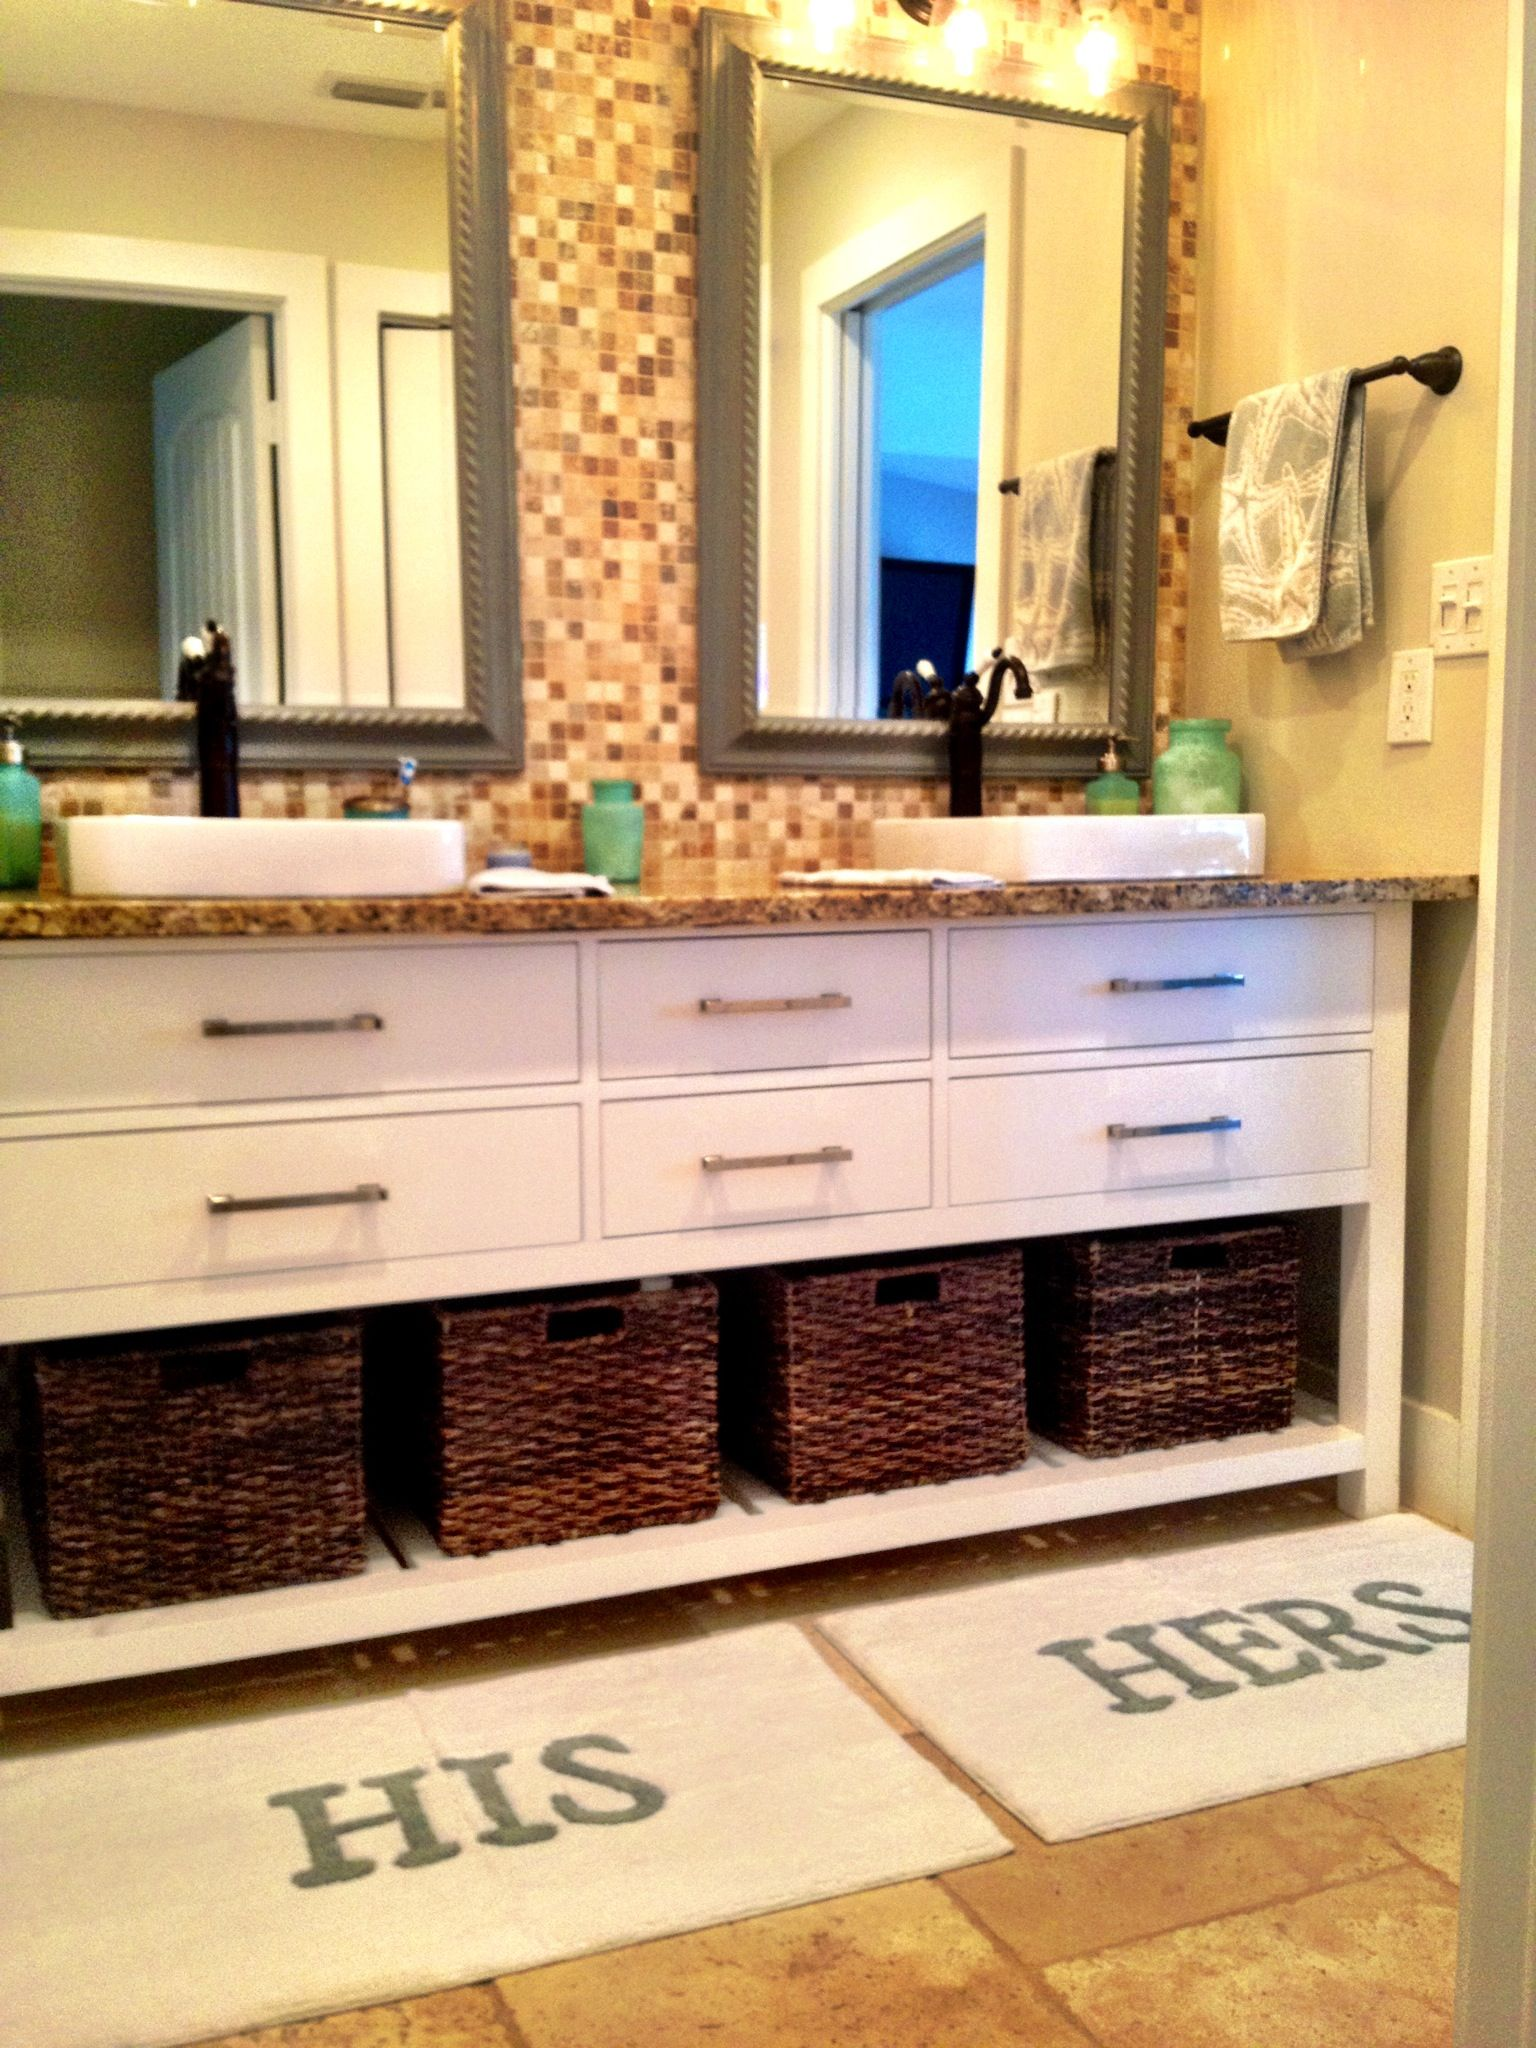 Cute His And Her Bathroom Love The Rugs Basket Idea